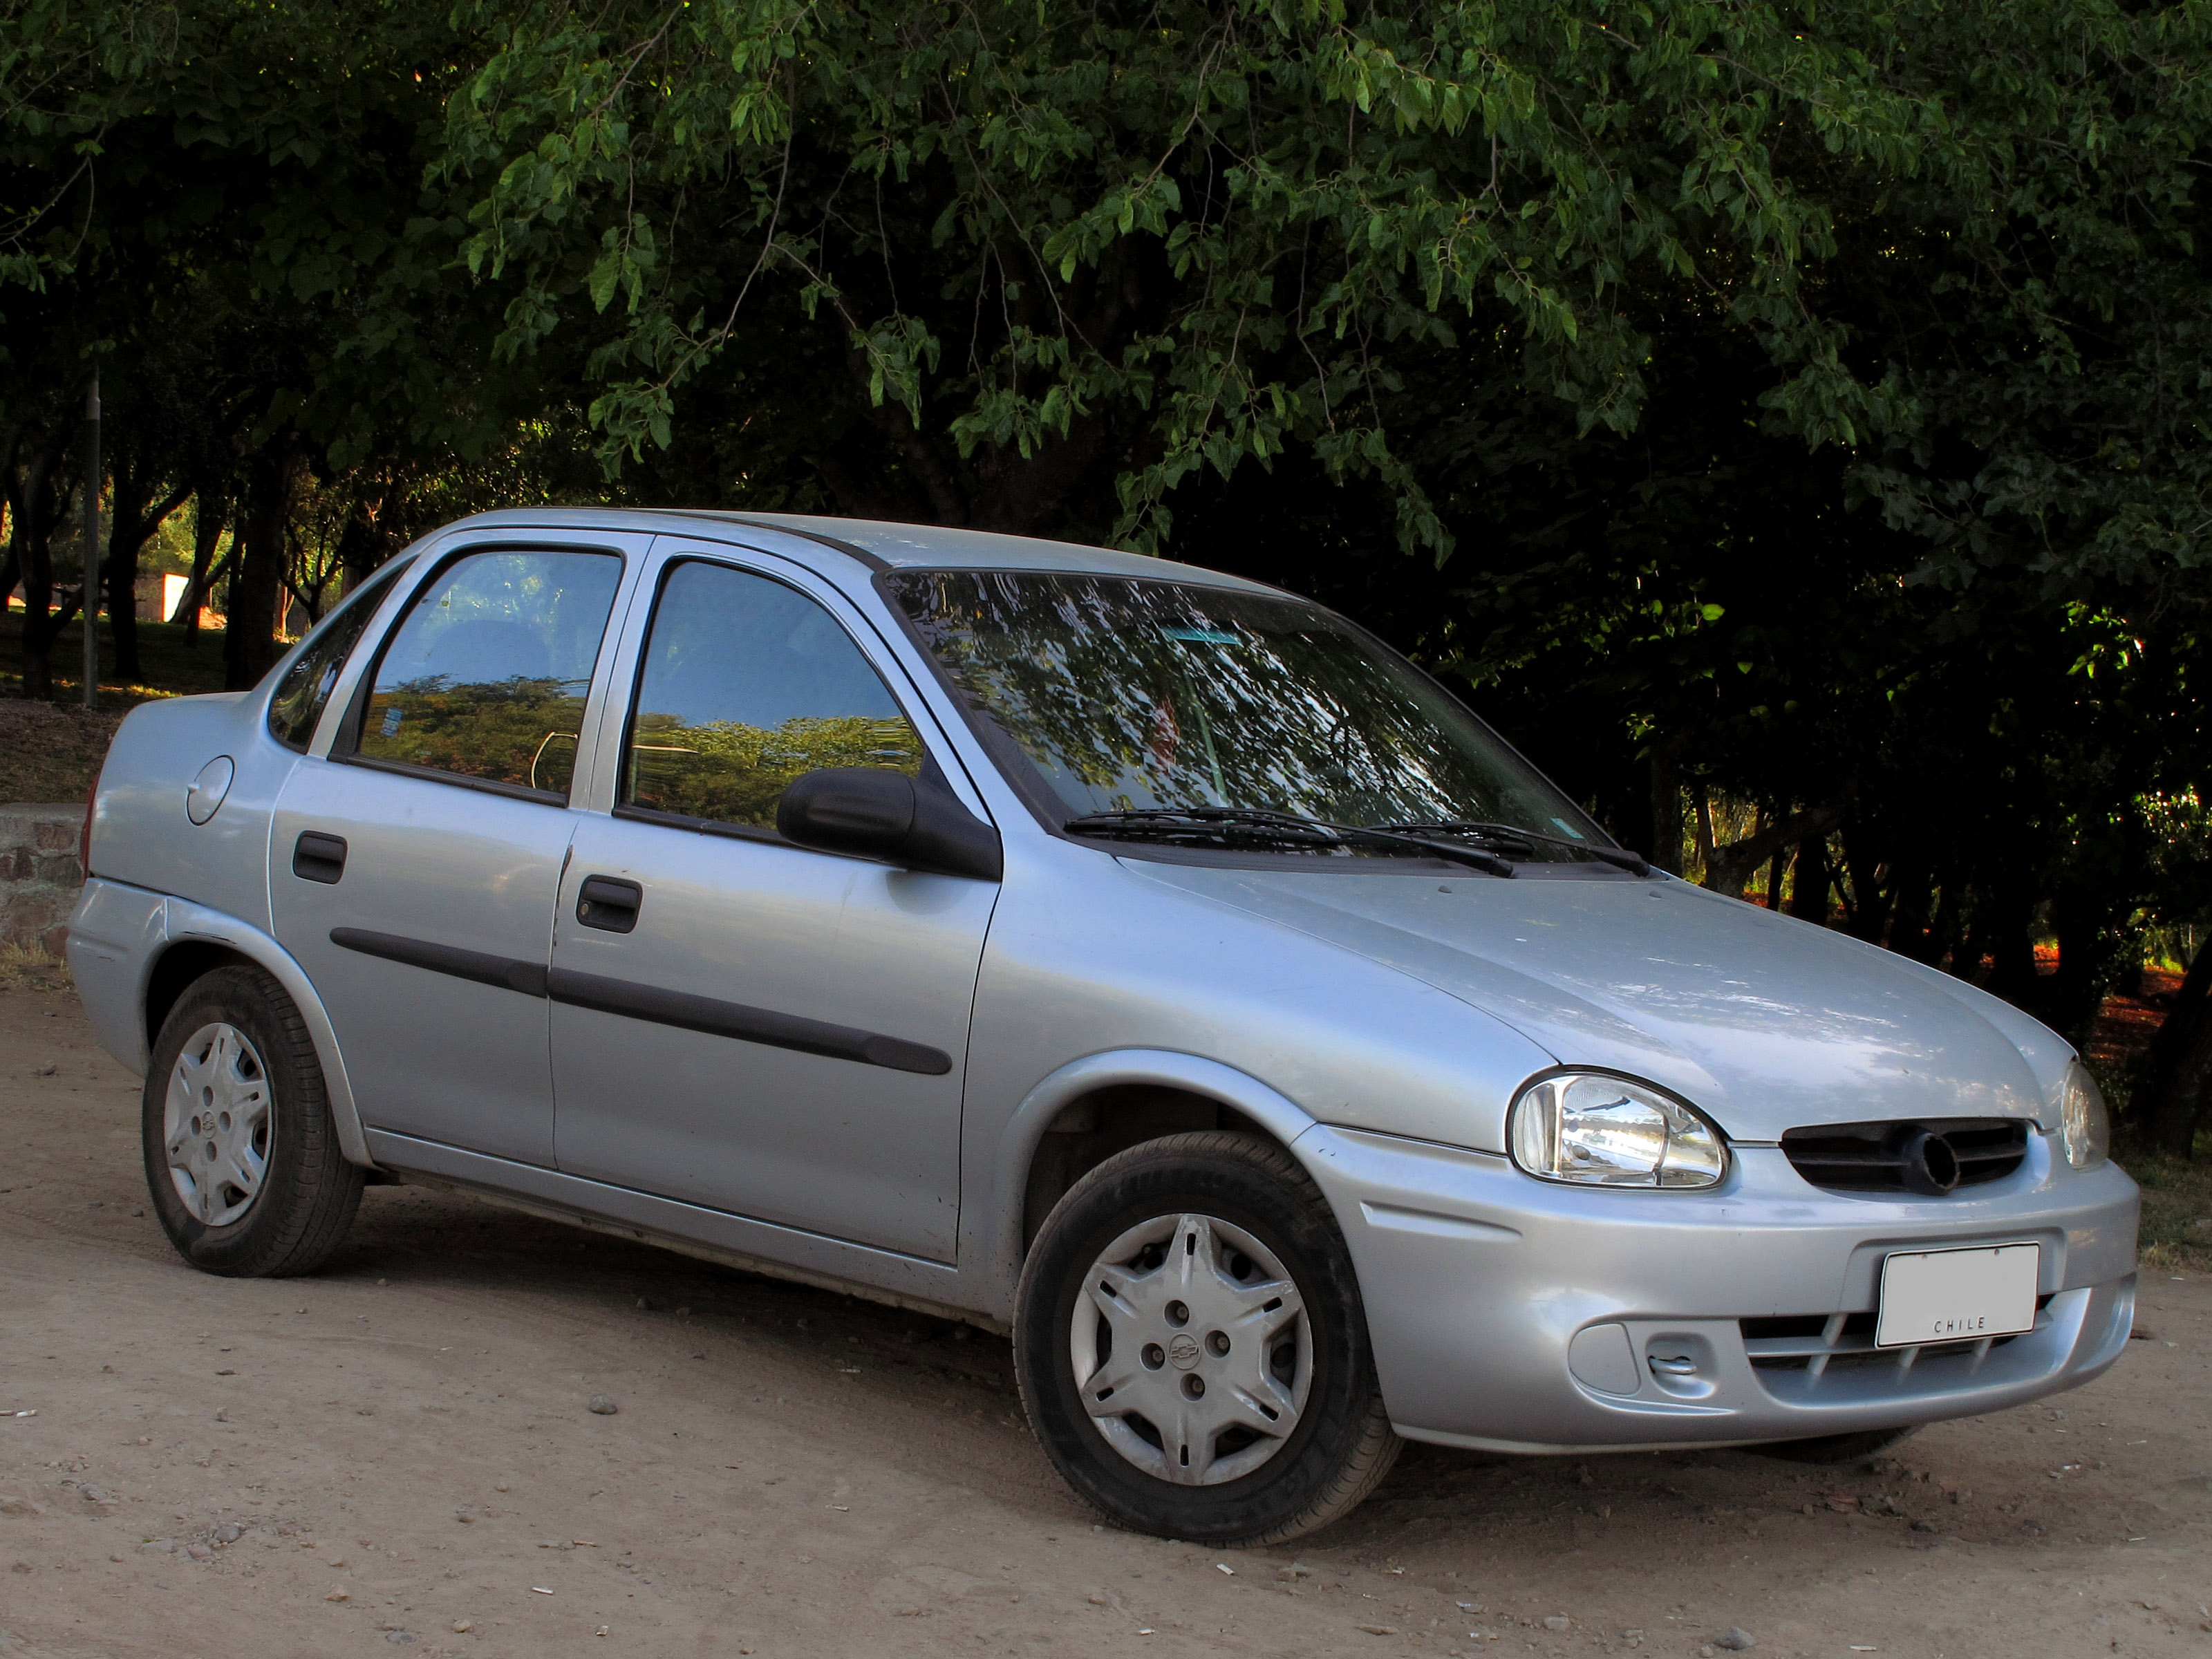 File:Chevrolet Corsa Classic 1.6 GL Sedan 2006 ...